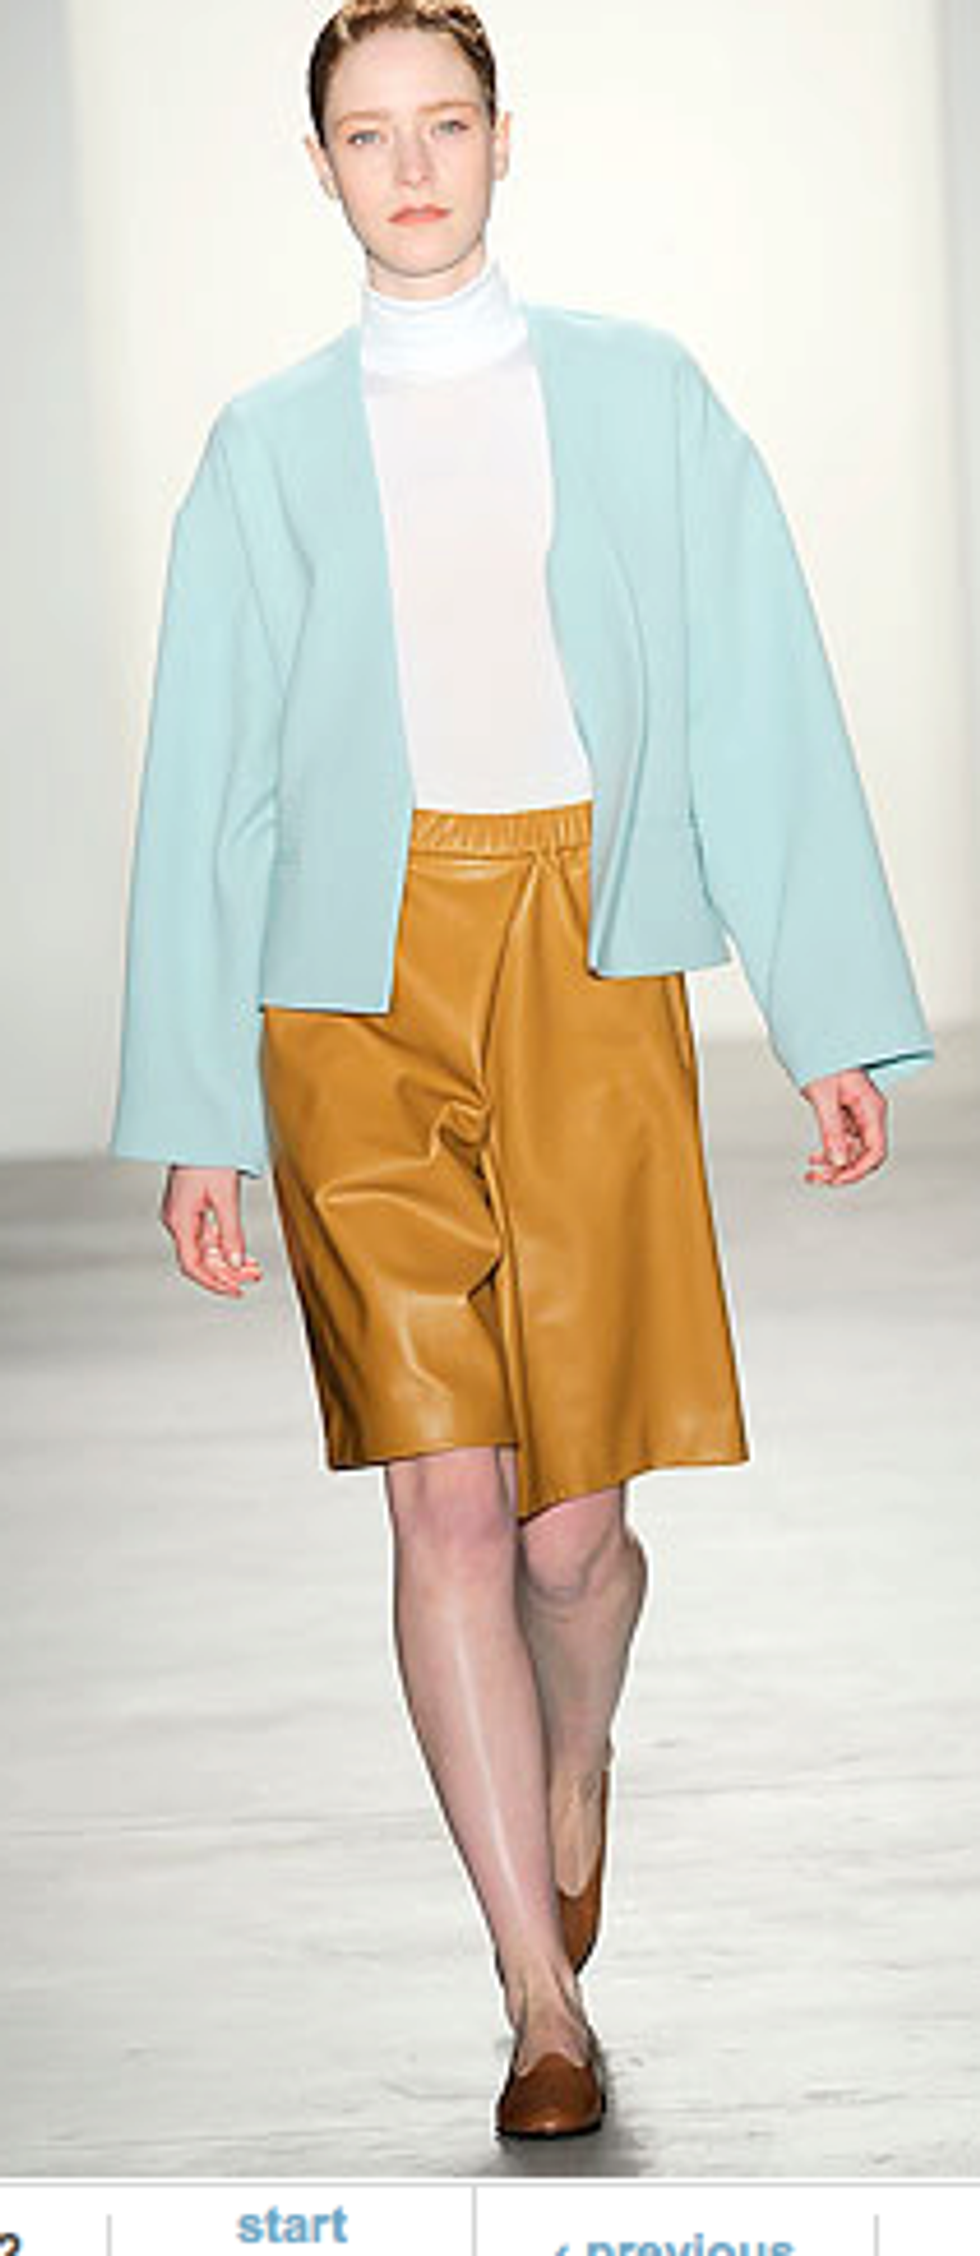 Matthew Ames's Simple, Chic Collection